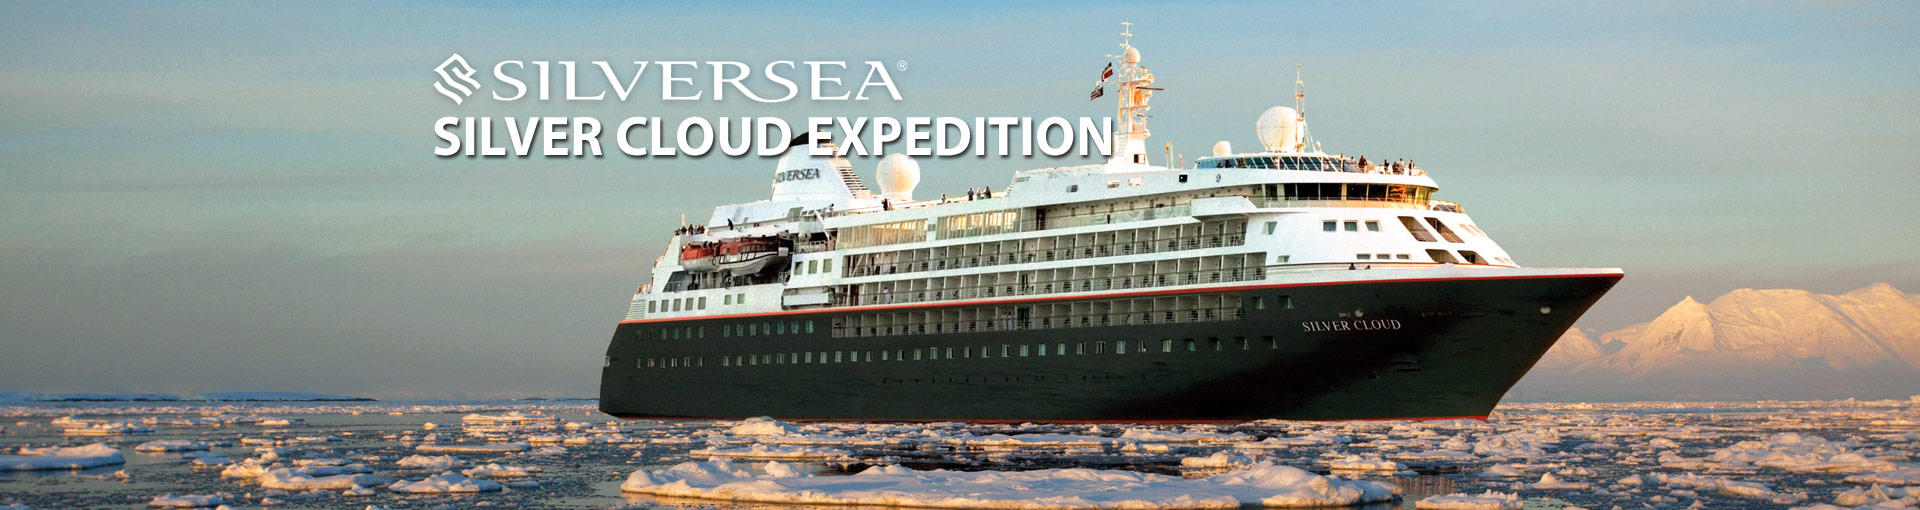 Silversea Cruises Silver Cloud Expedition Ship